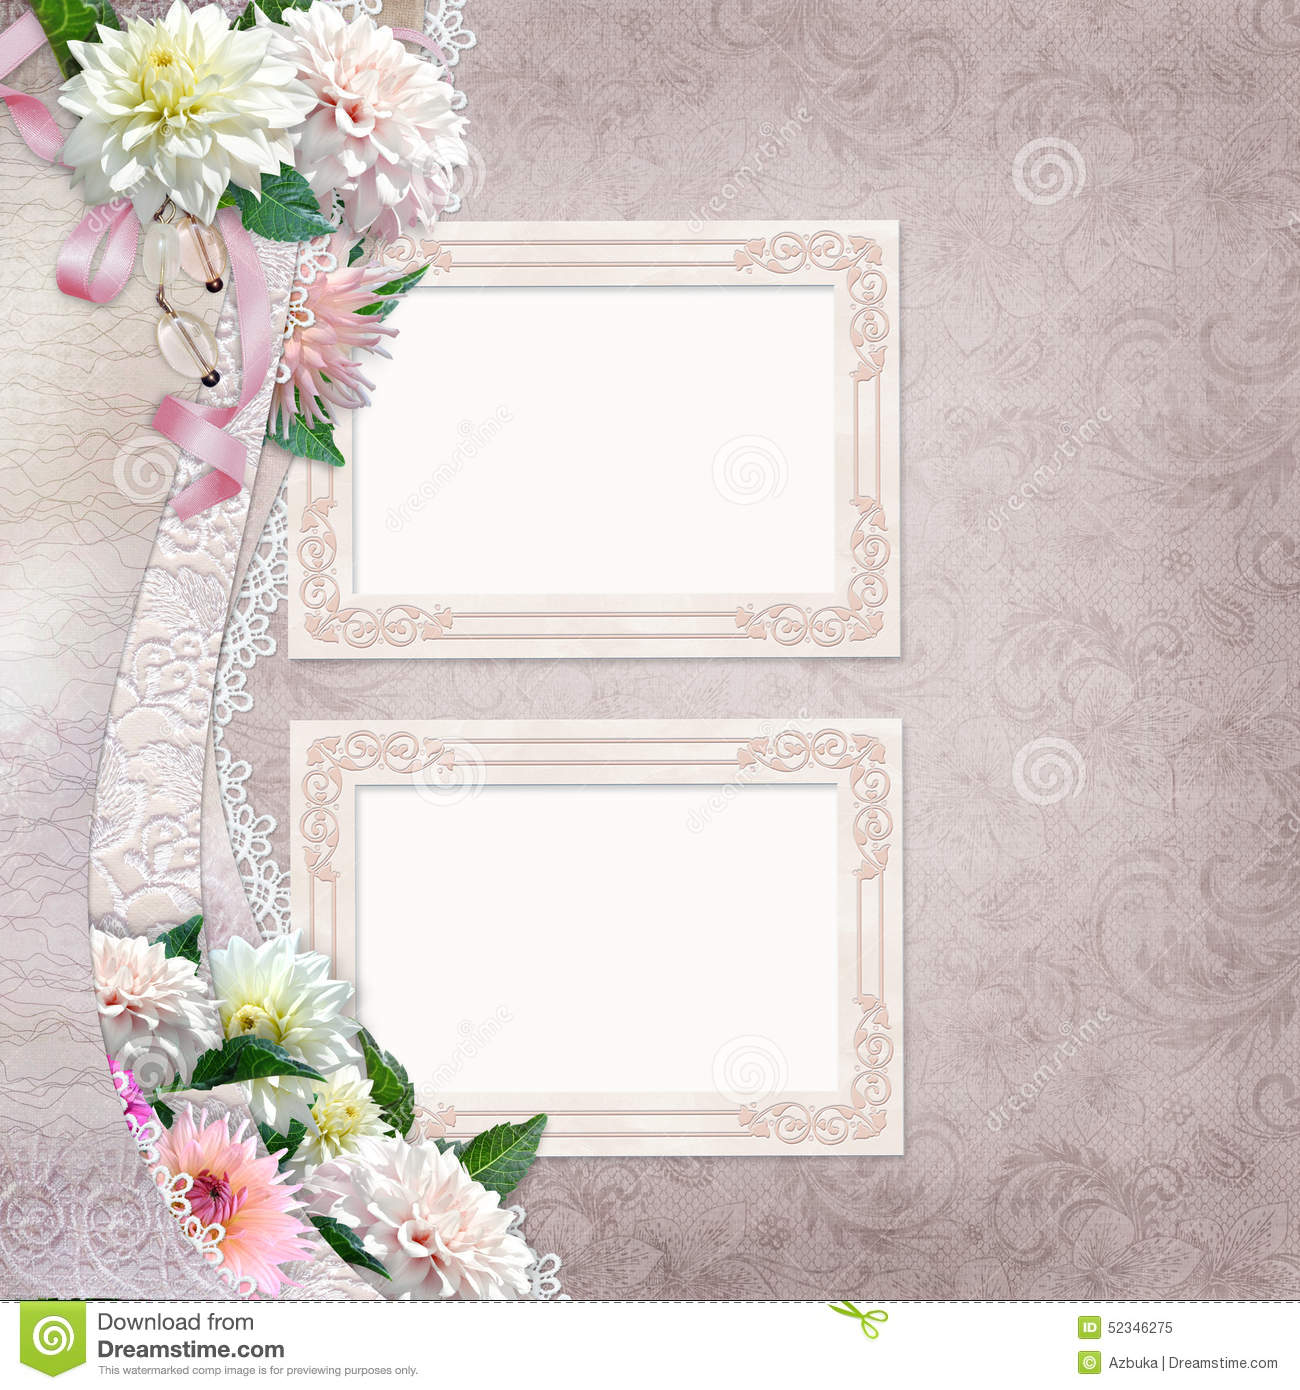 Beautiful Border Of Flowers, Lace And Frames On Vintage ...